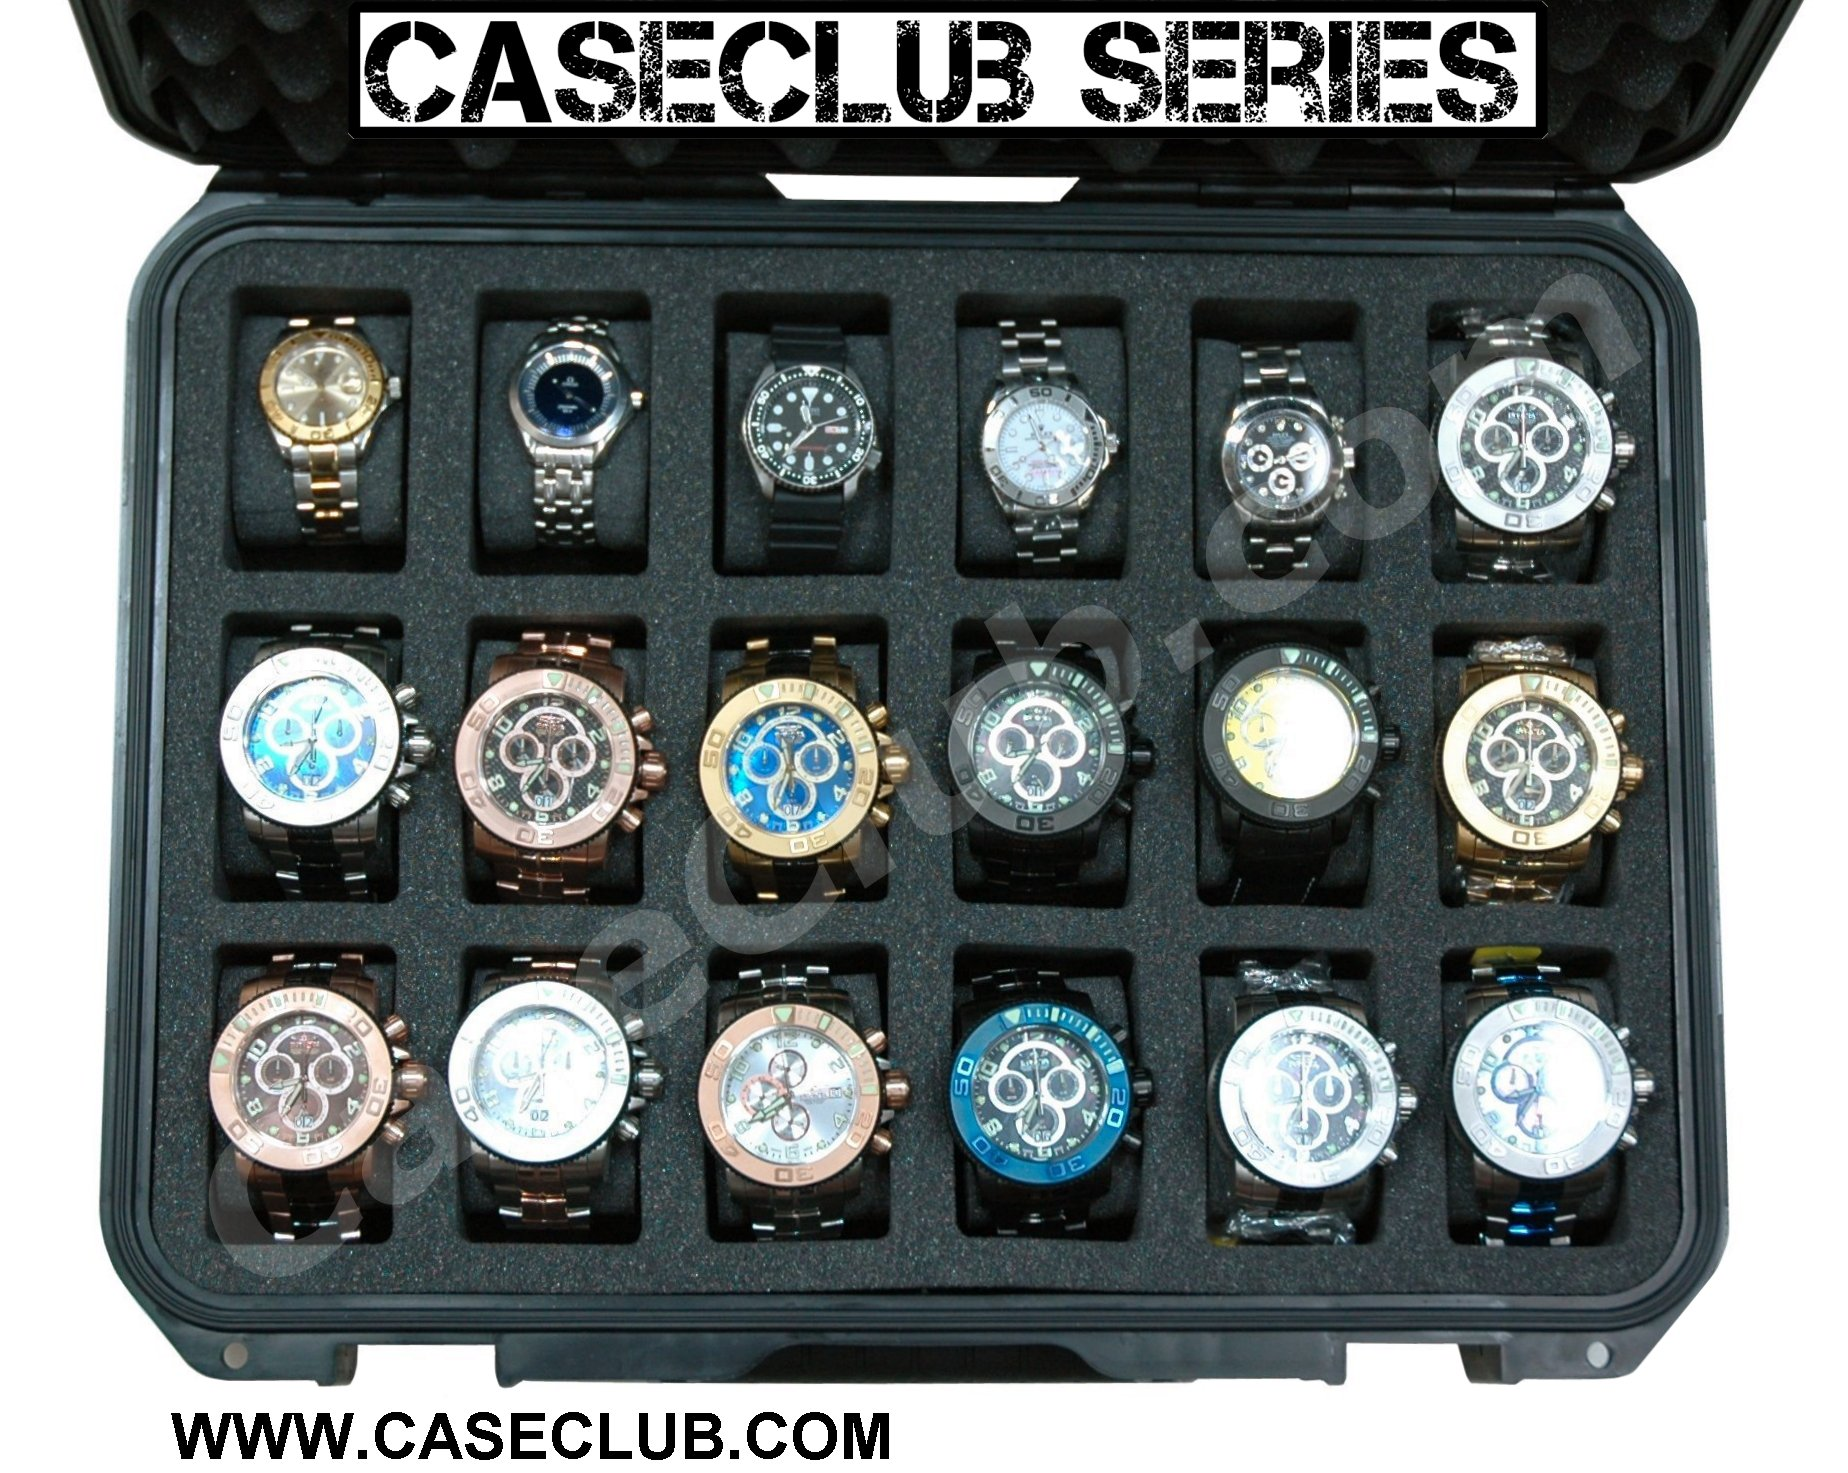 18 watch case - large sized watches